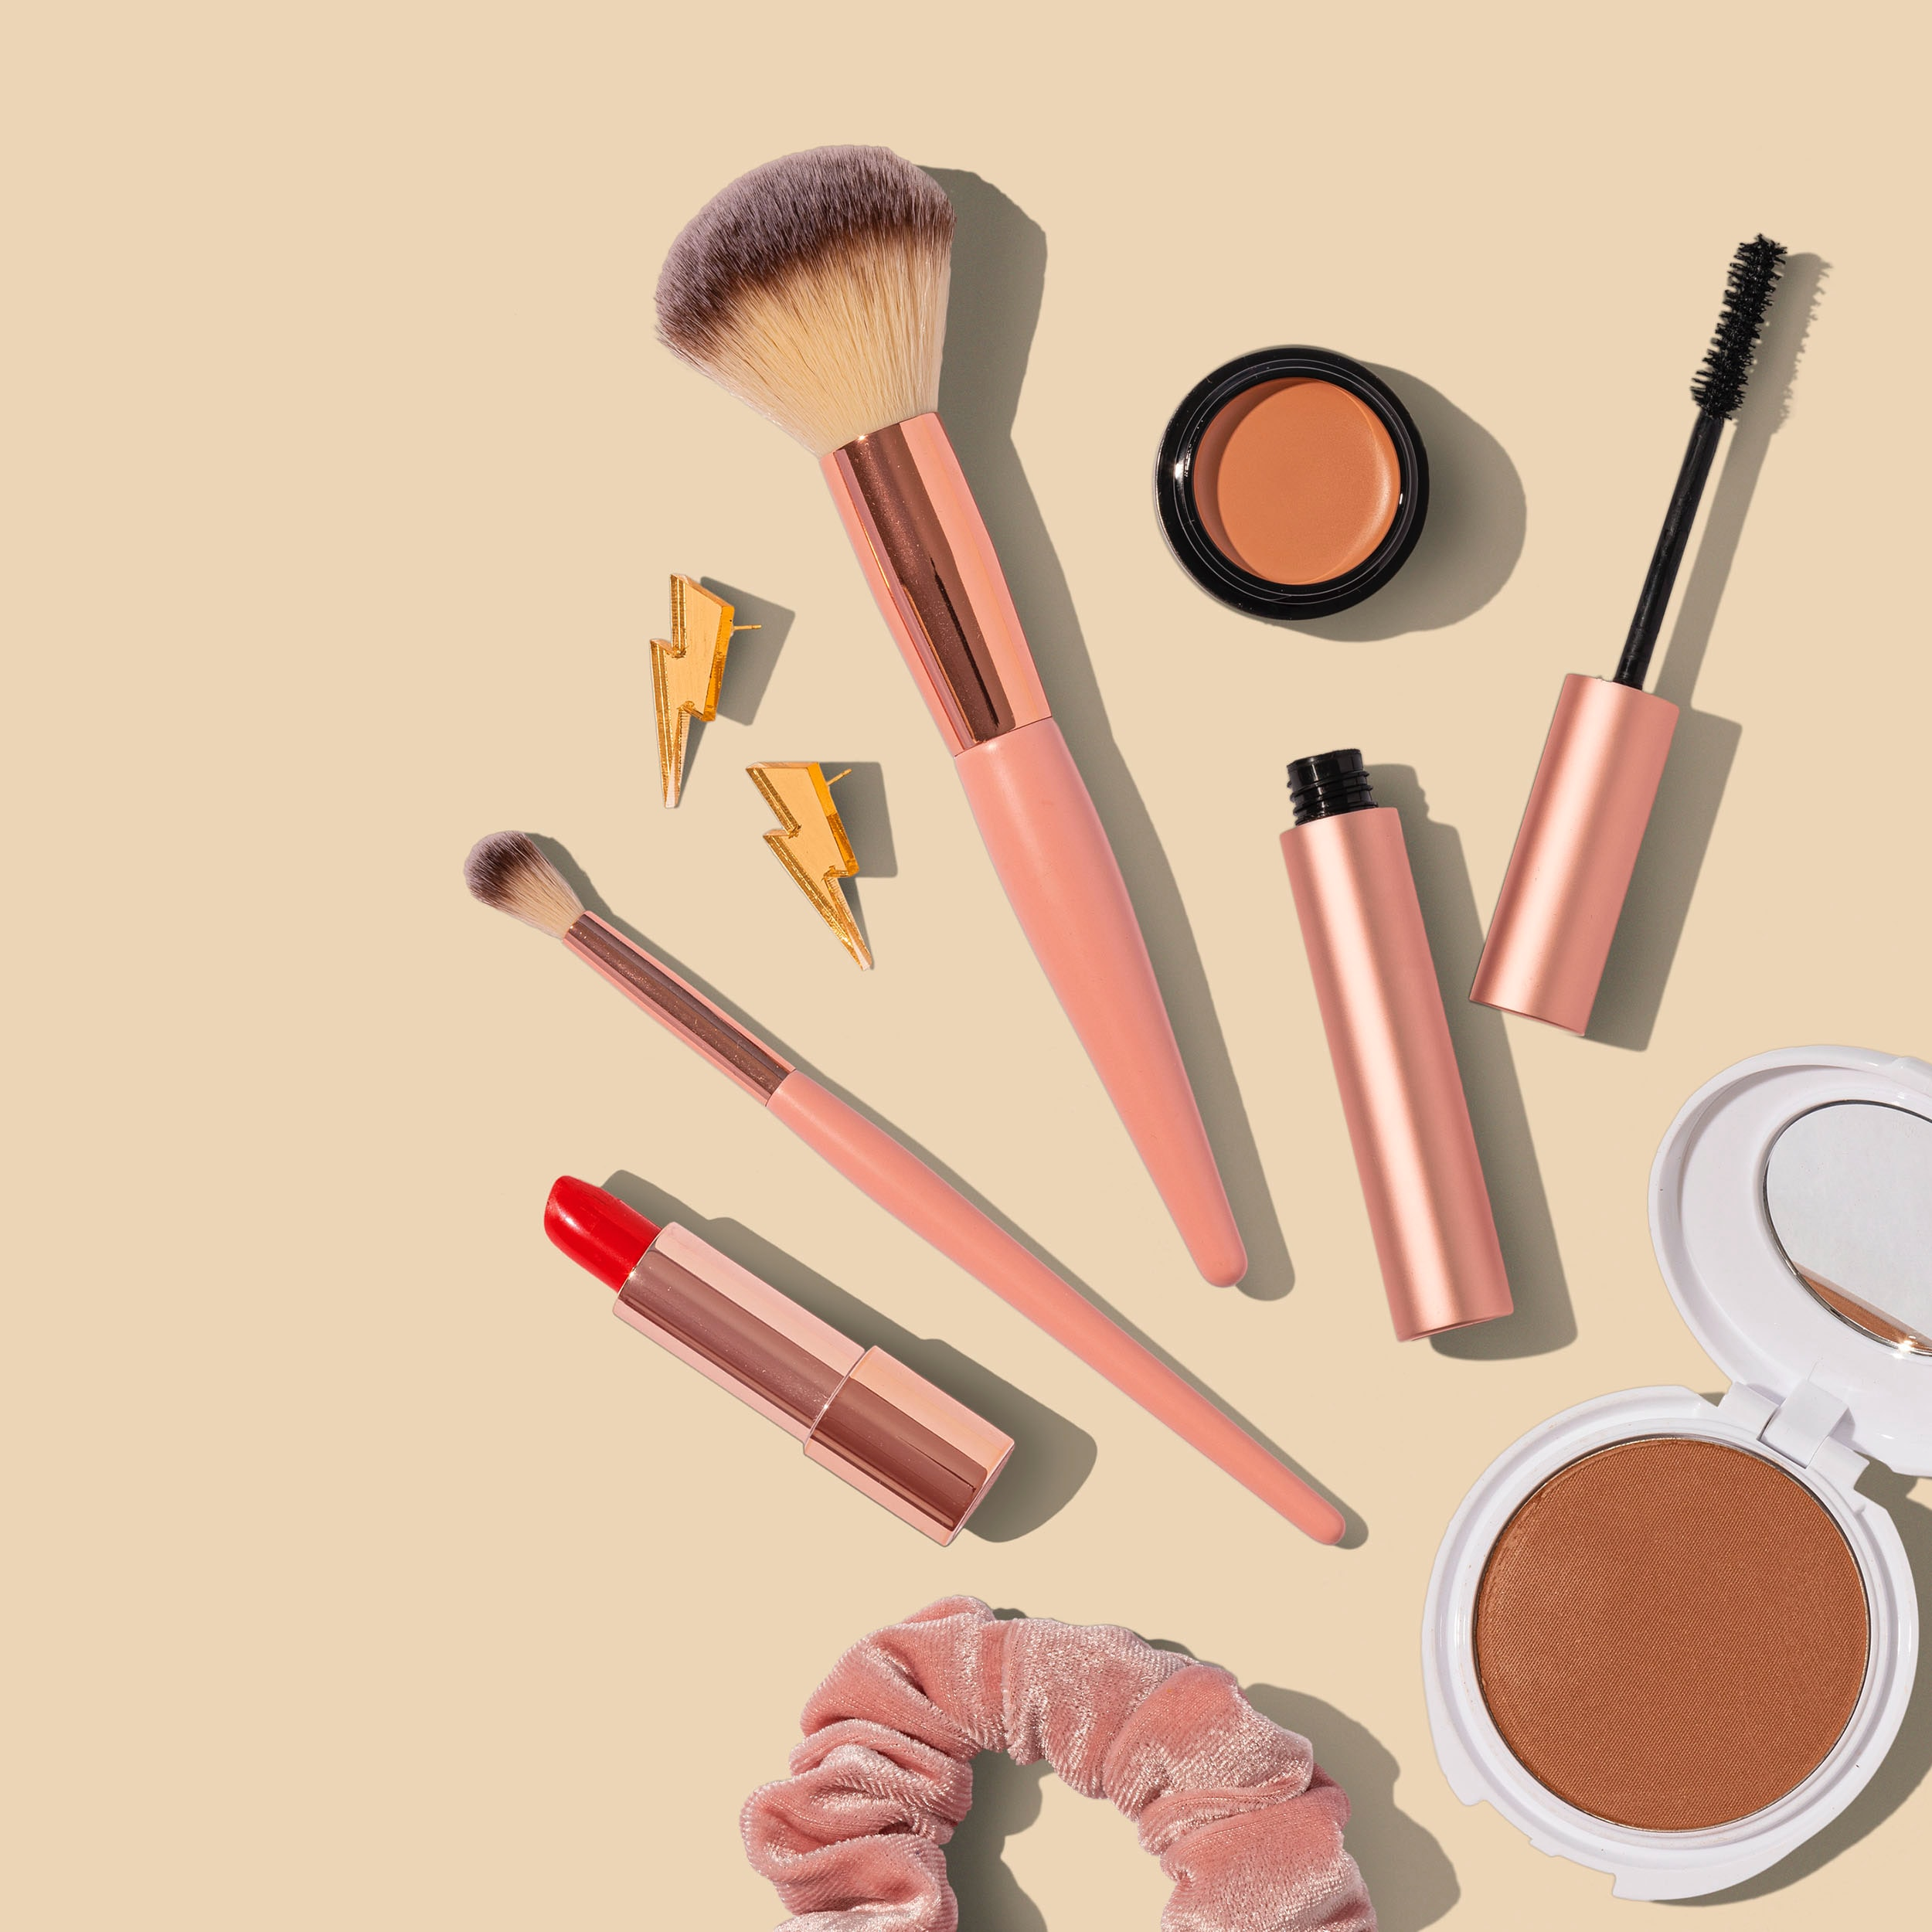 Top 7 Affordable Indian Beauty Brands